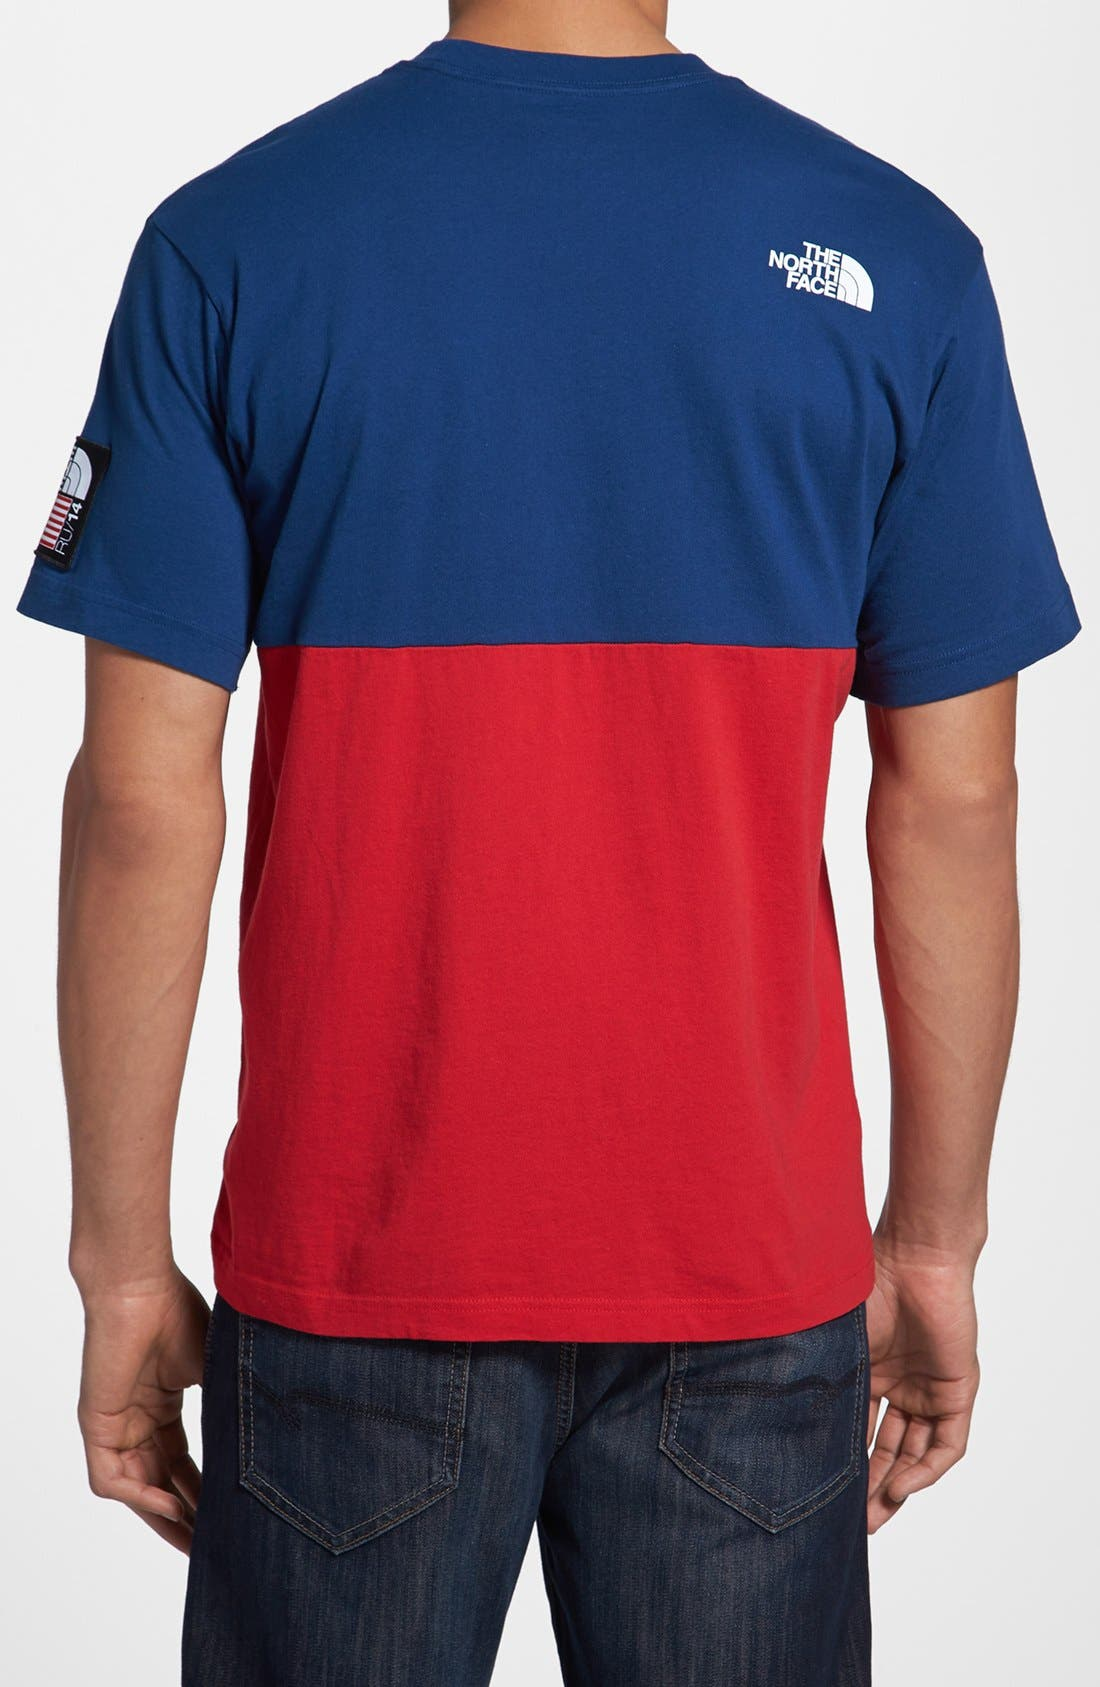 Alternate Image 2  - The North Face 'USA - International Collection' Screenprint Short Sleeve T-Shirt